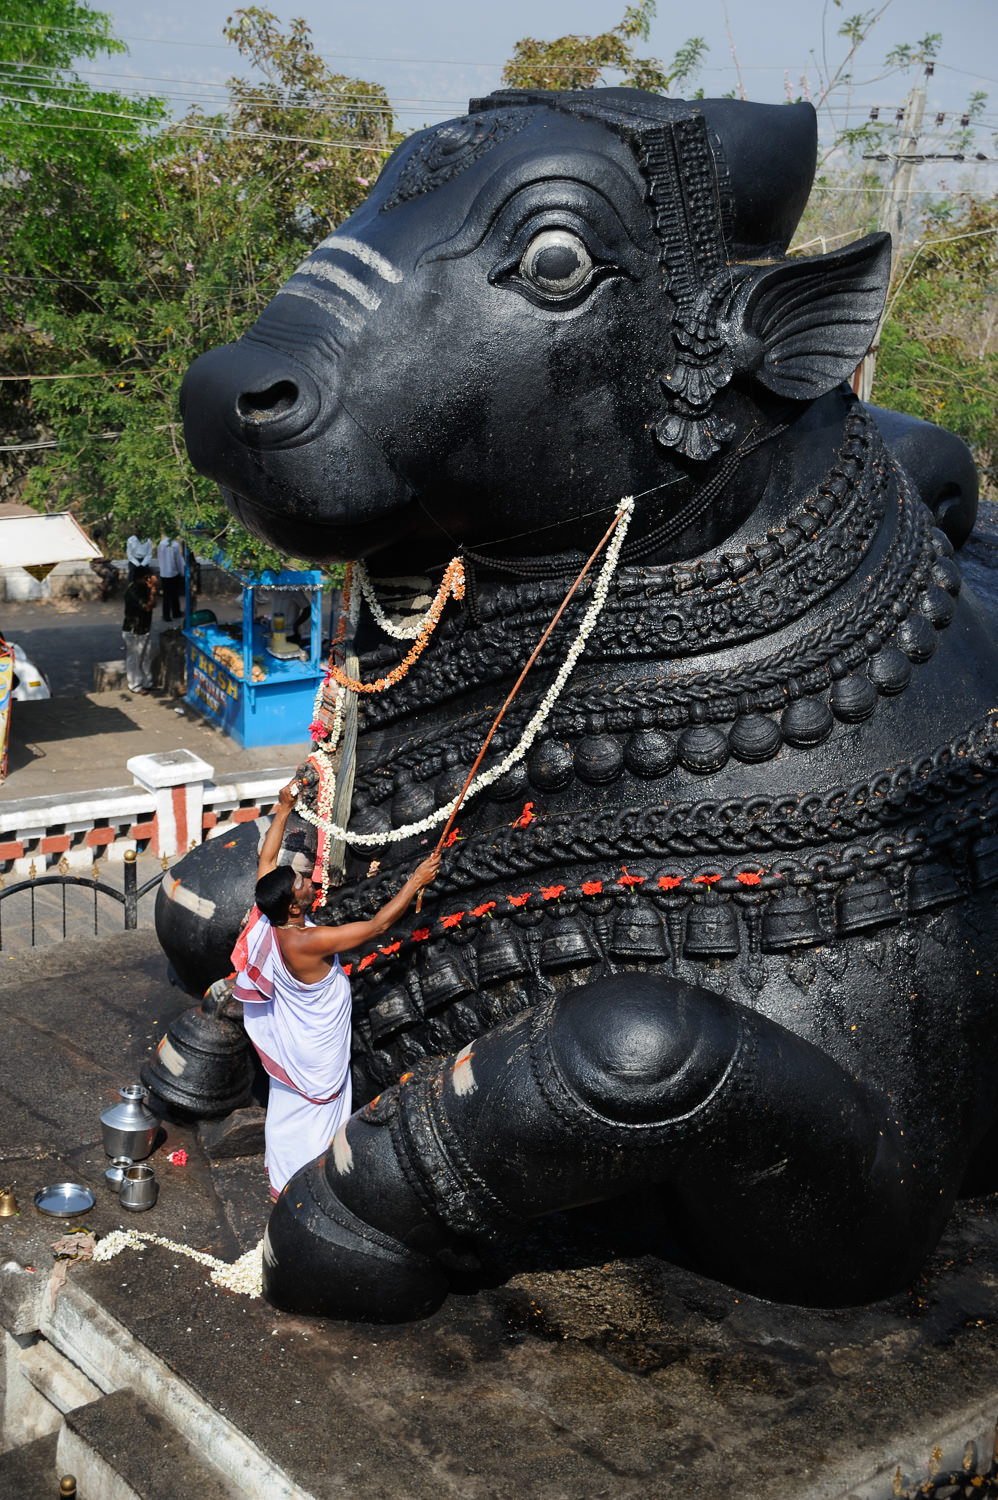 Nandi statue in Chaumundi hills, Mysore, one of the biggest bull statues in India.